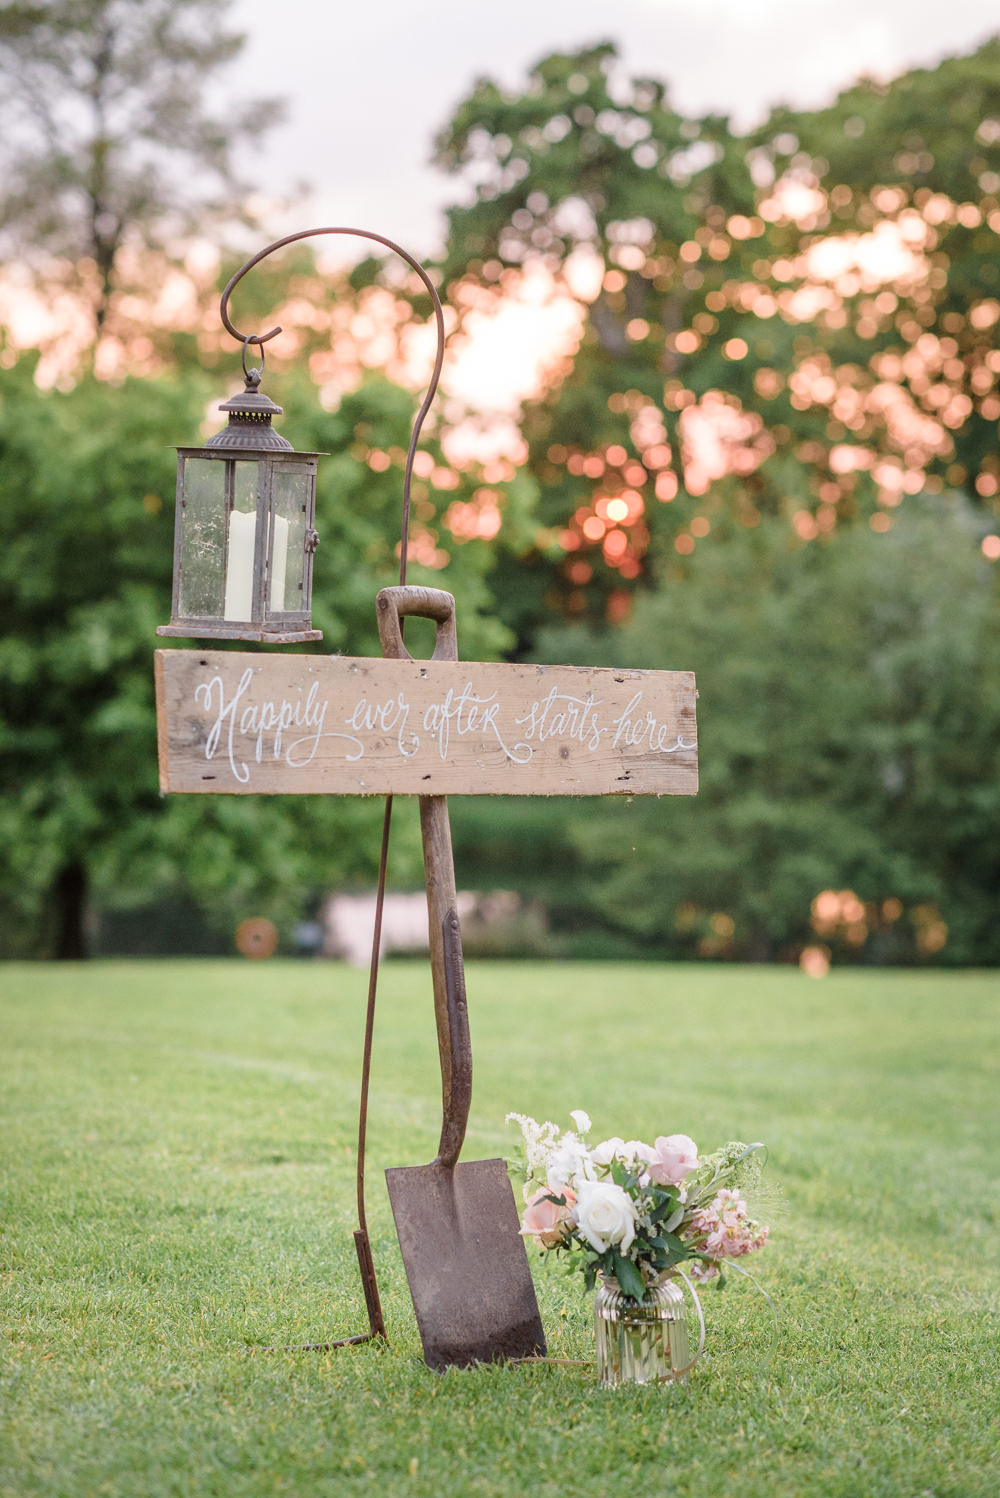 Happily Ever After Starts Here Shepherds Crook Spade Flowers Babington House Wedding Ria Mishaal Photography